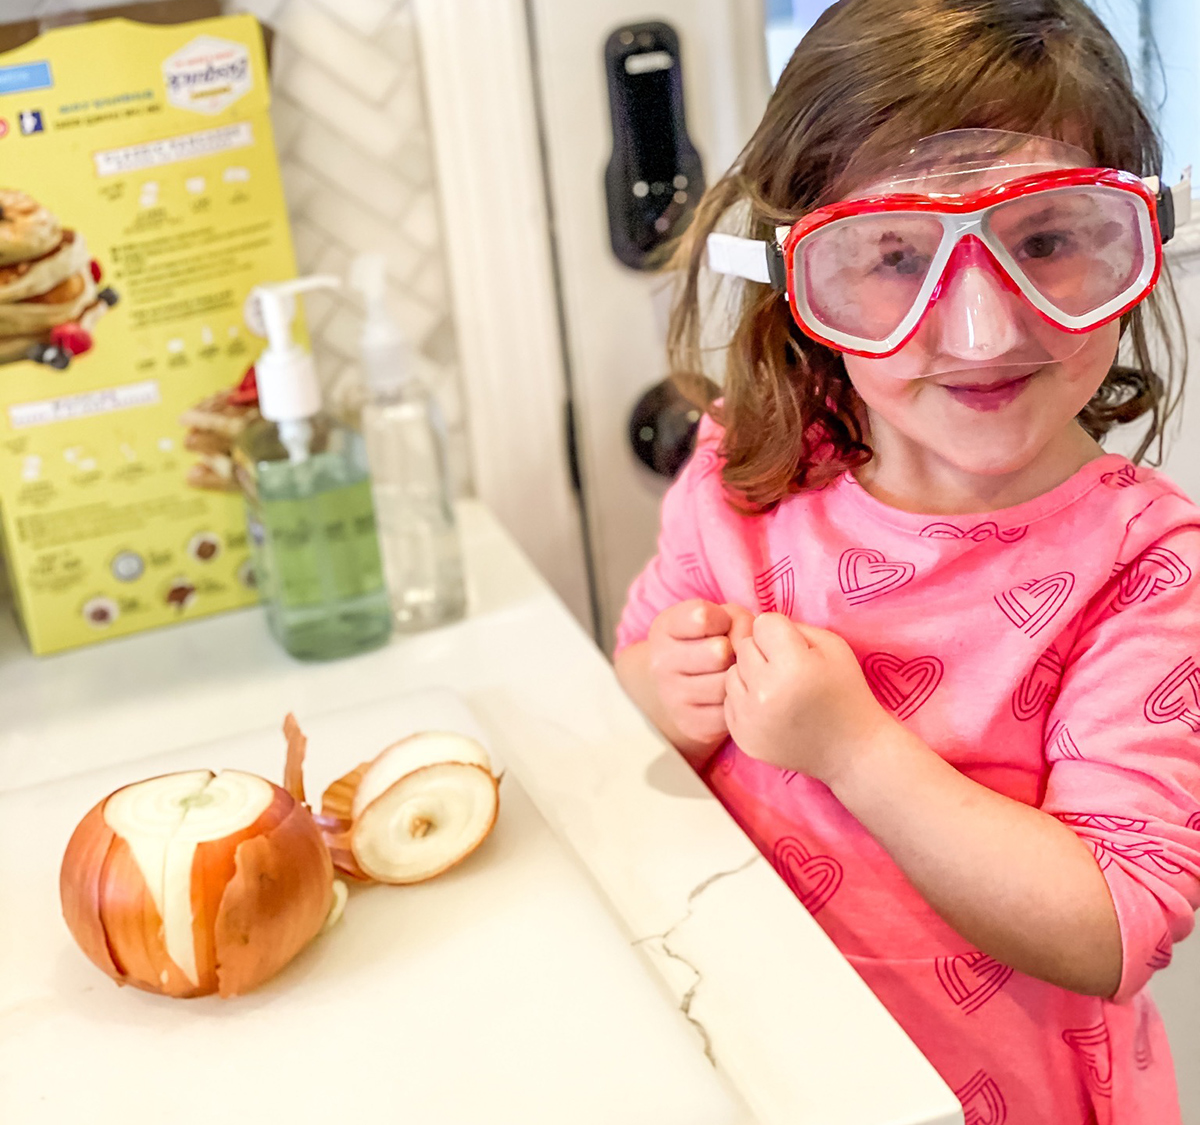 A little girl wears a snorkeling mask while she cuts onions.